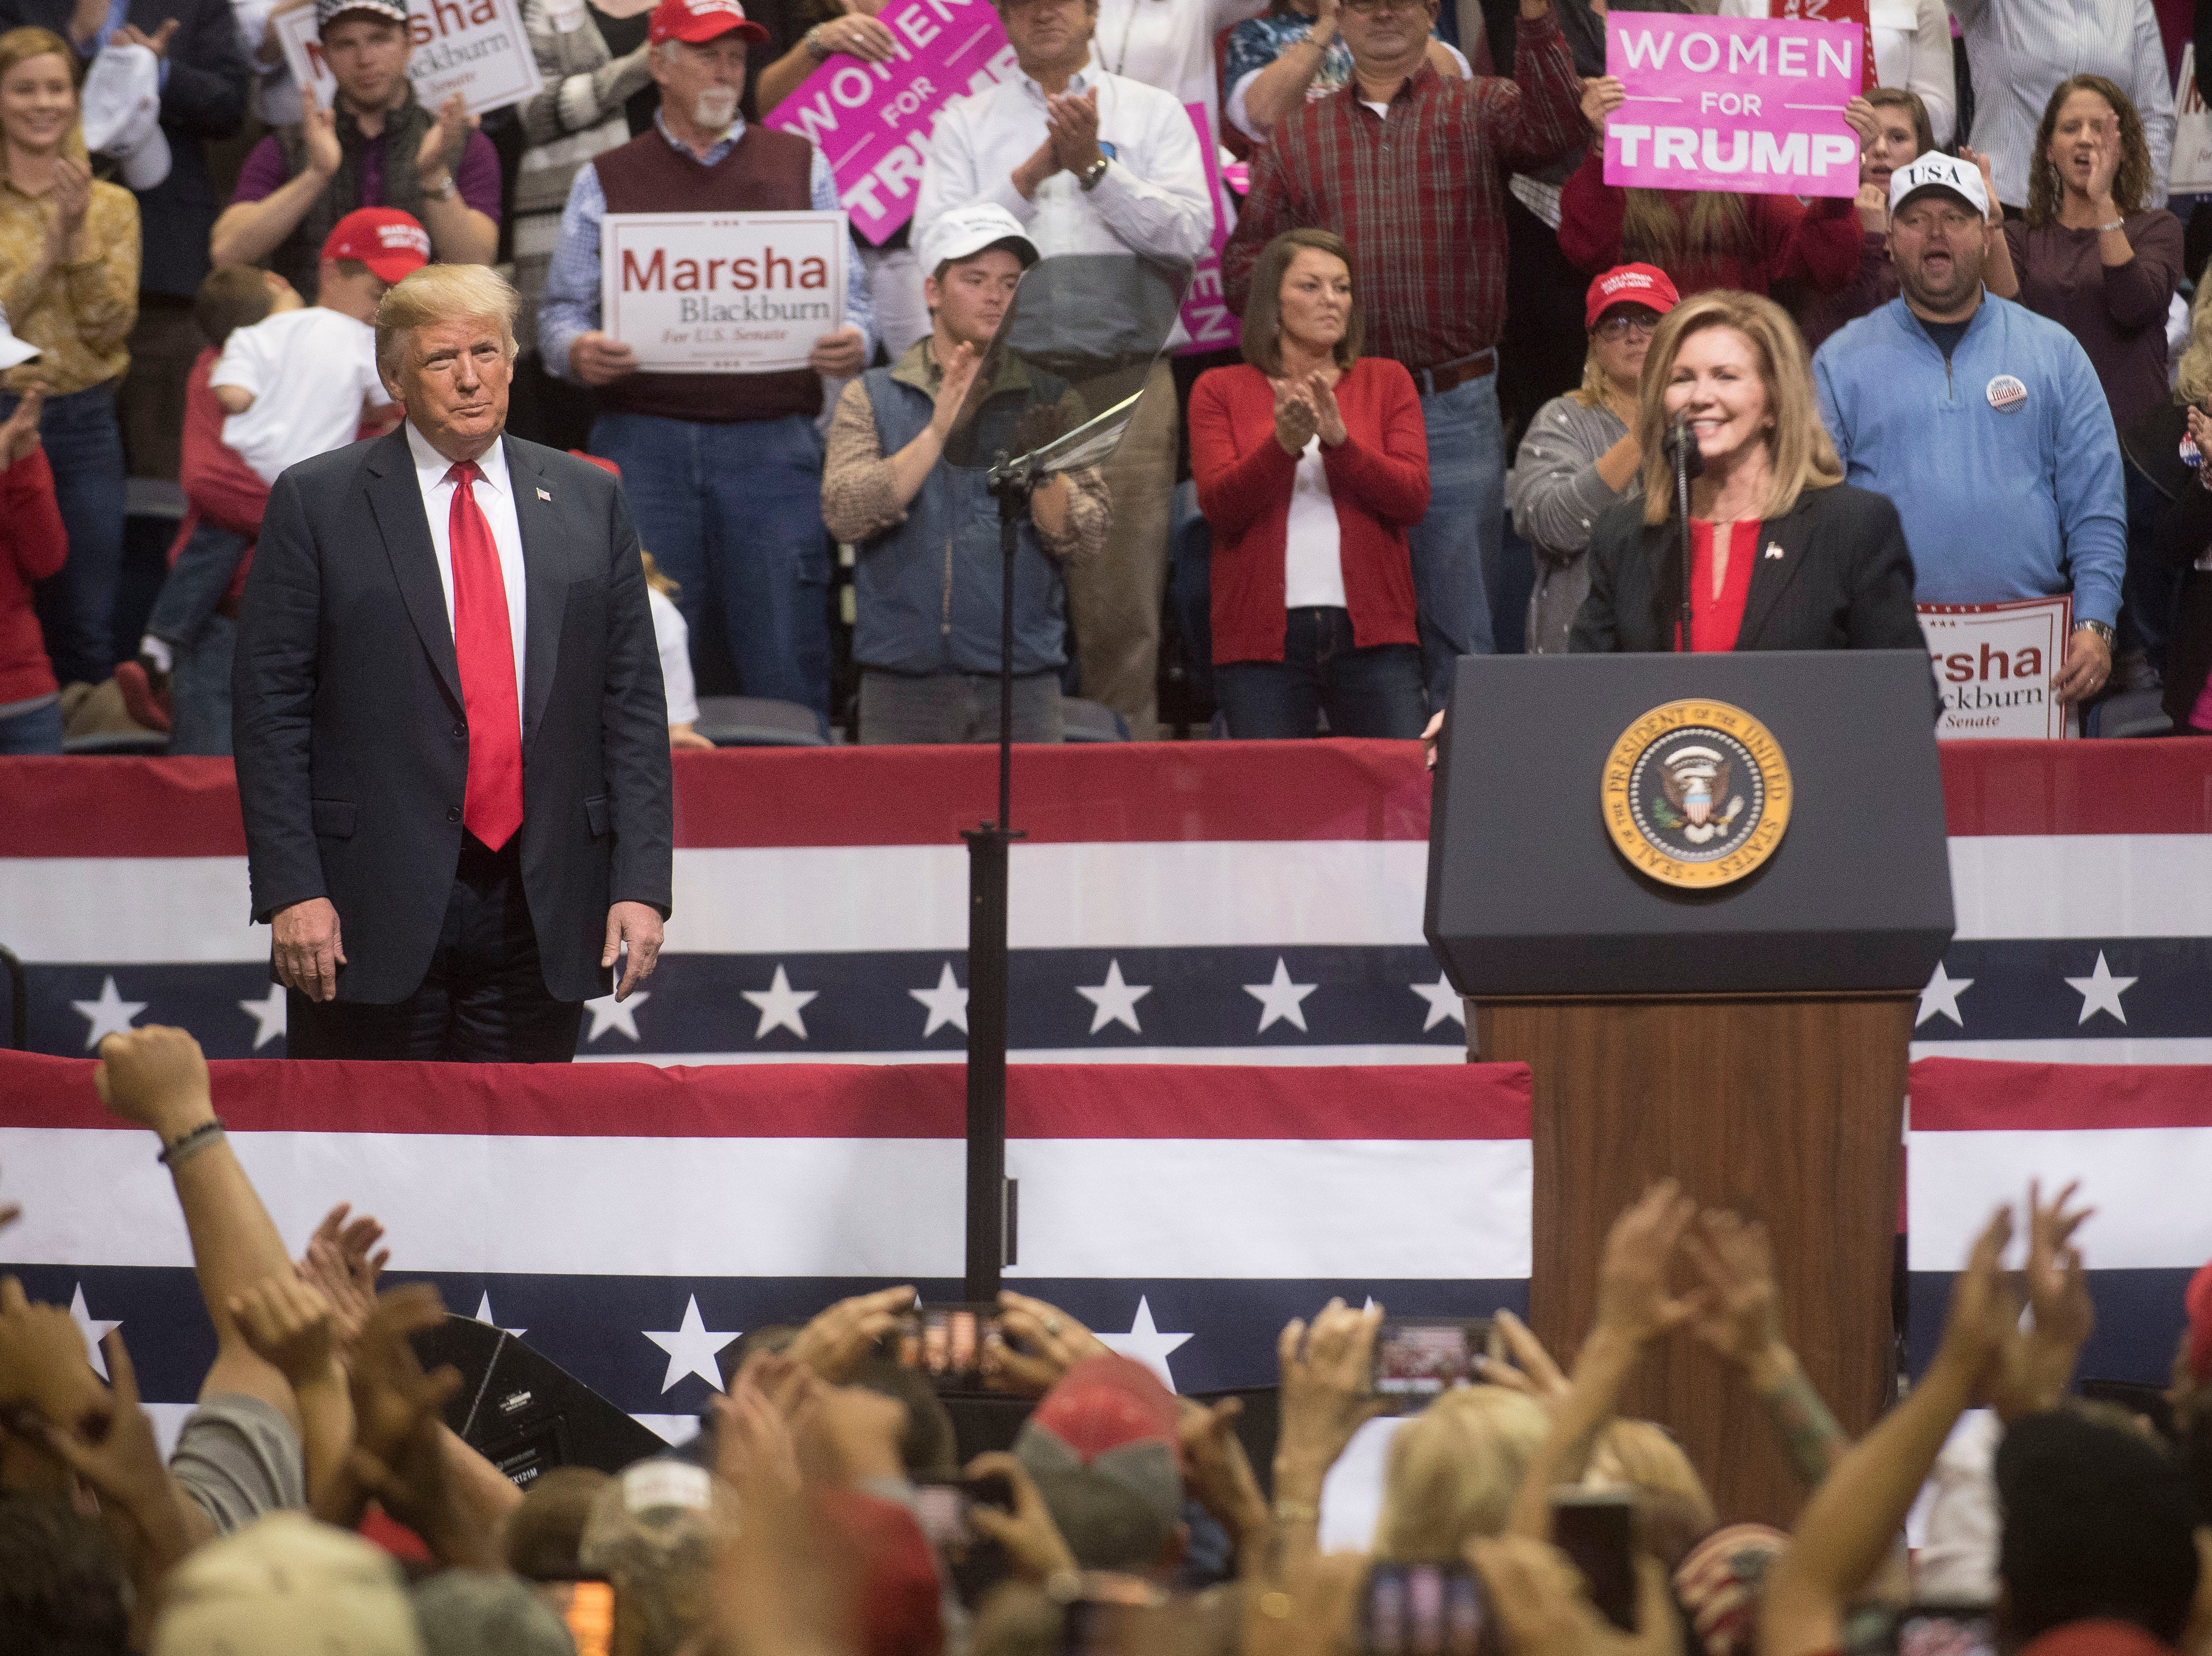 President Trump stands on stage with U.S. Rep. Marsha Blackburn at a rally in support of her for the U.S. Senate at McKenzie Arena in Chattanooga, Sunday, Nov. 4, 2018.